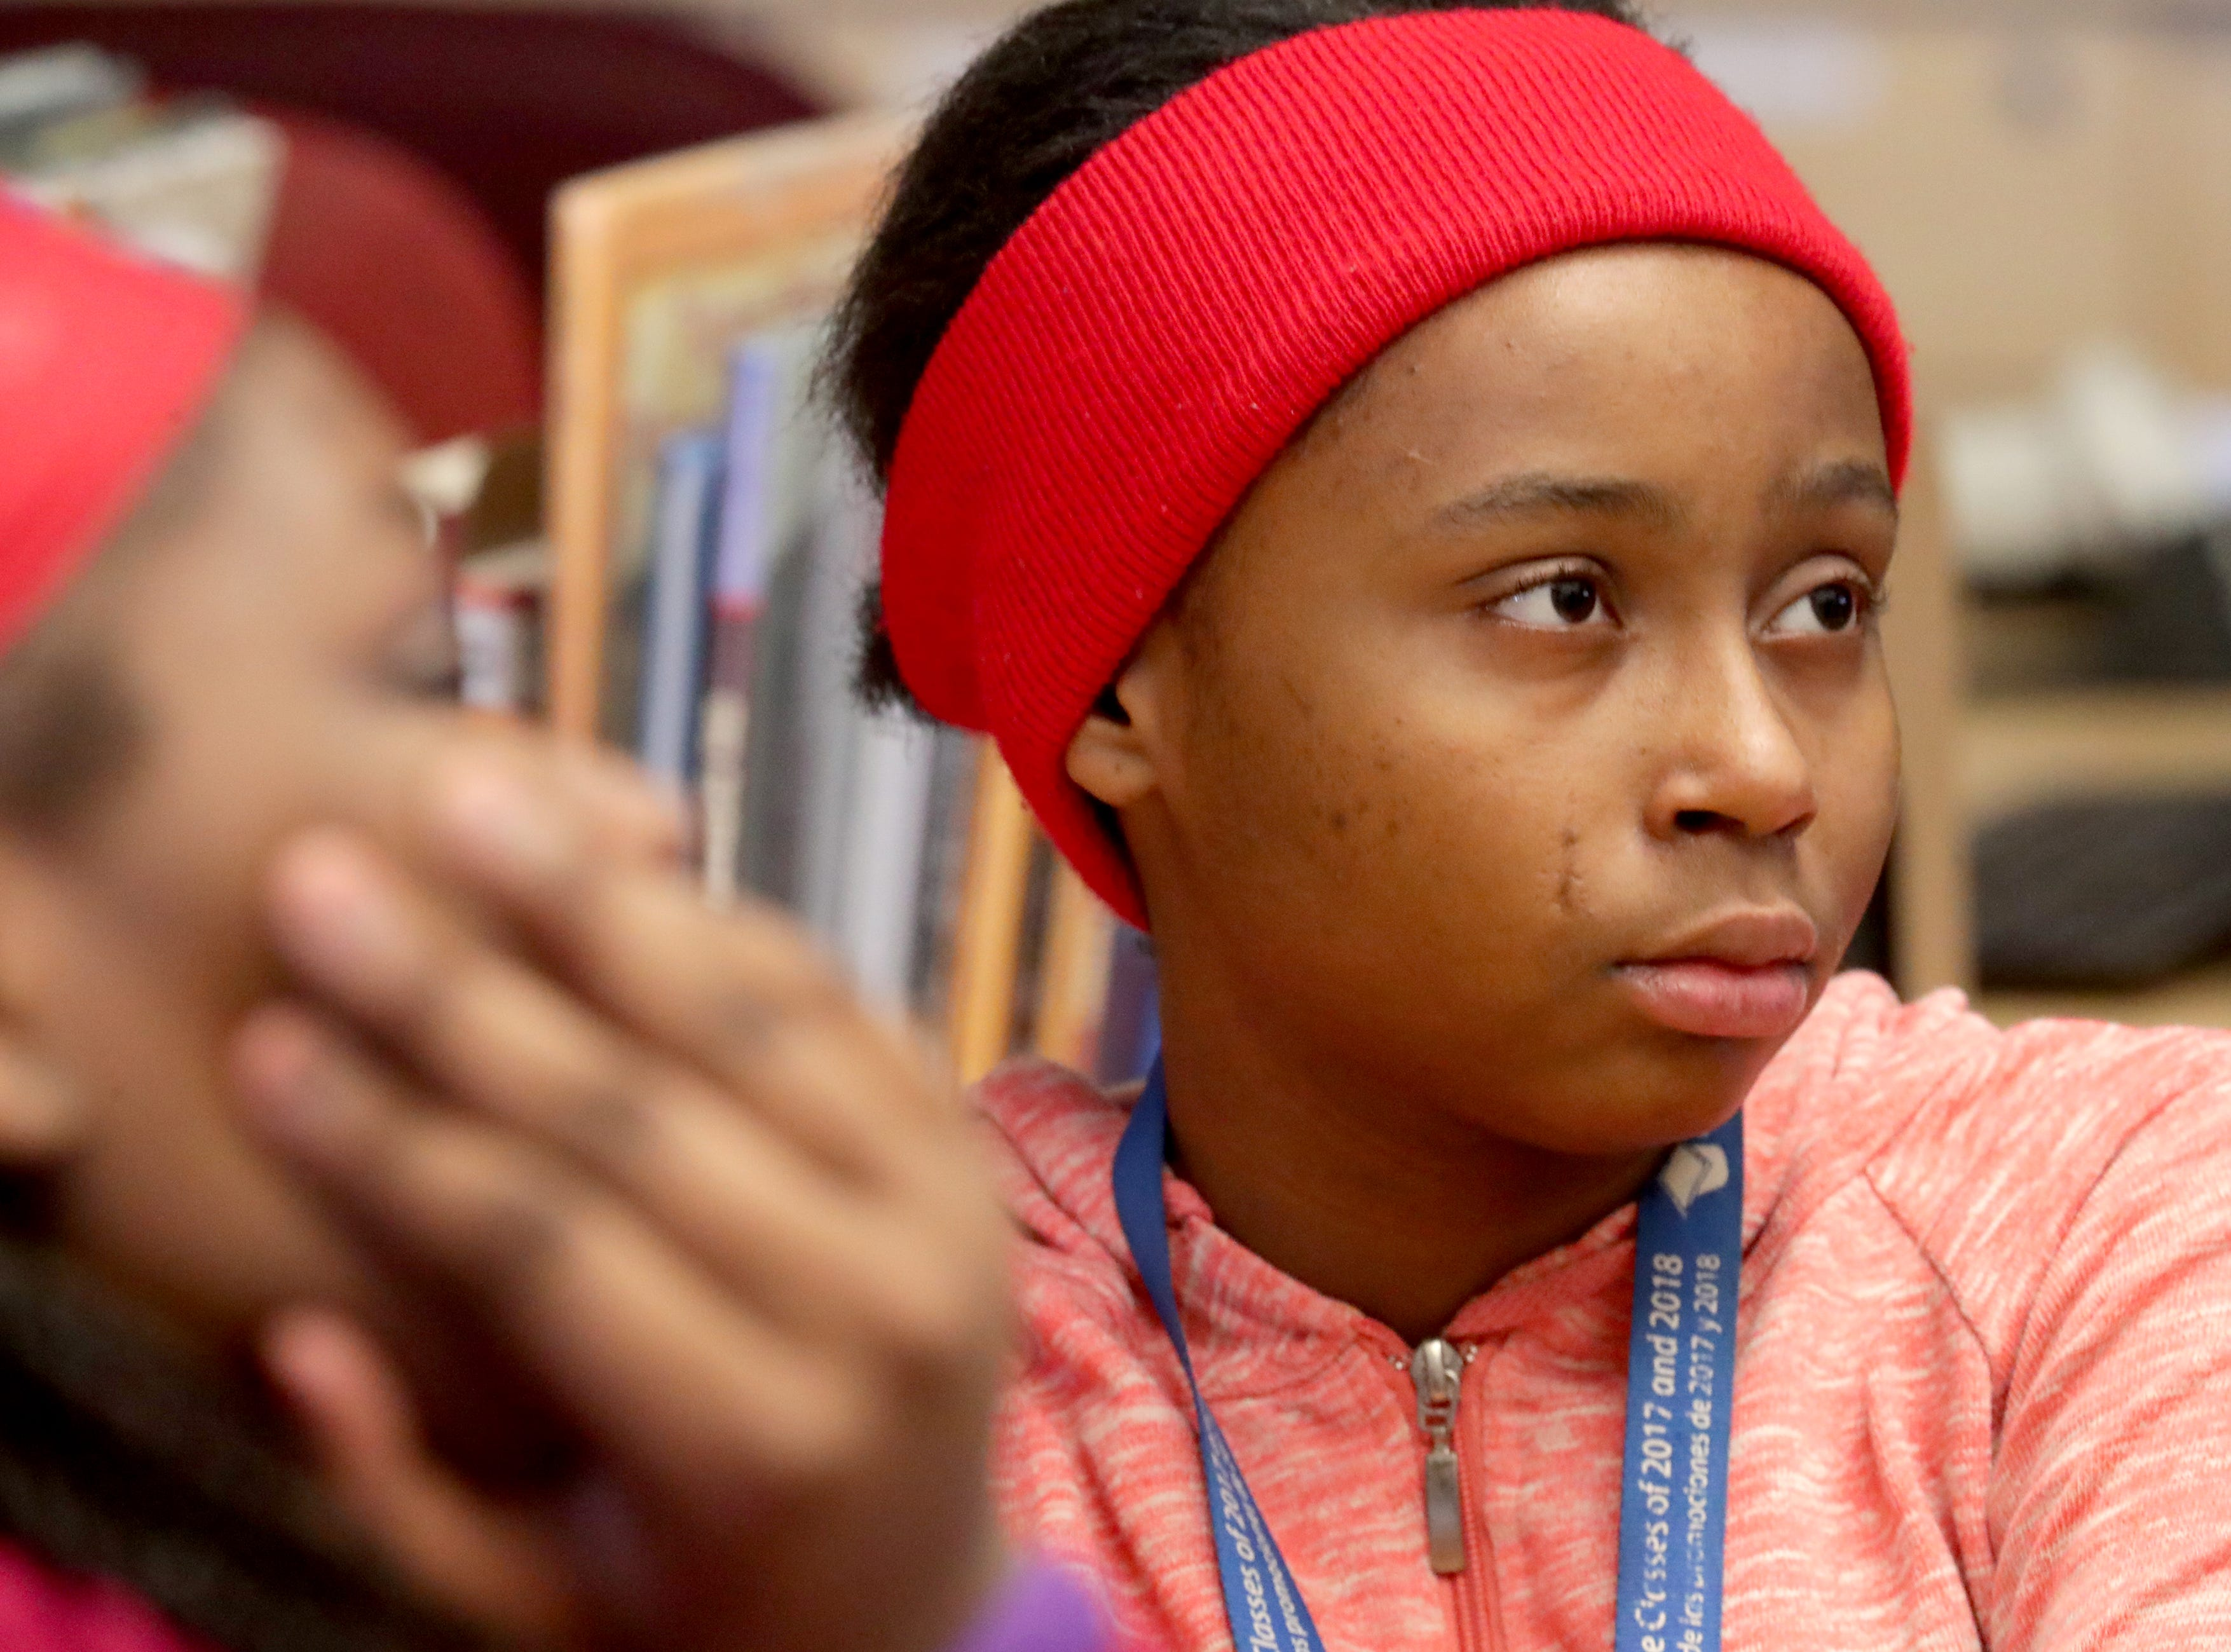 Eighth-grader Tatiana Edwards listens as Jerome Johnson, a library specialist speaks, to eighth-graders gathered in the library about the history of the equal rights movement.